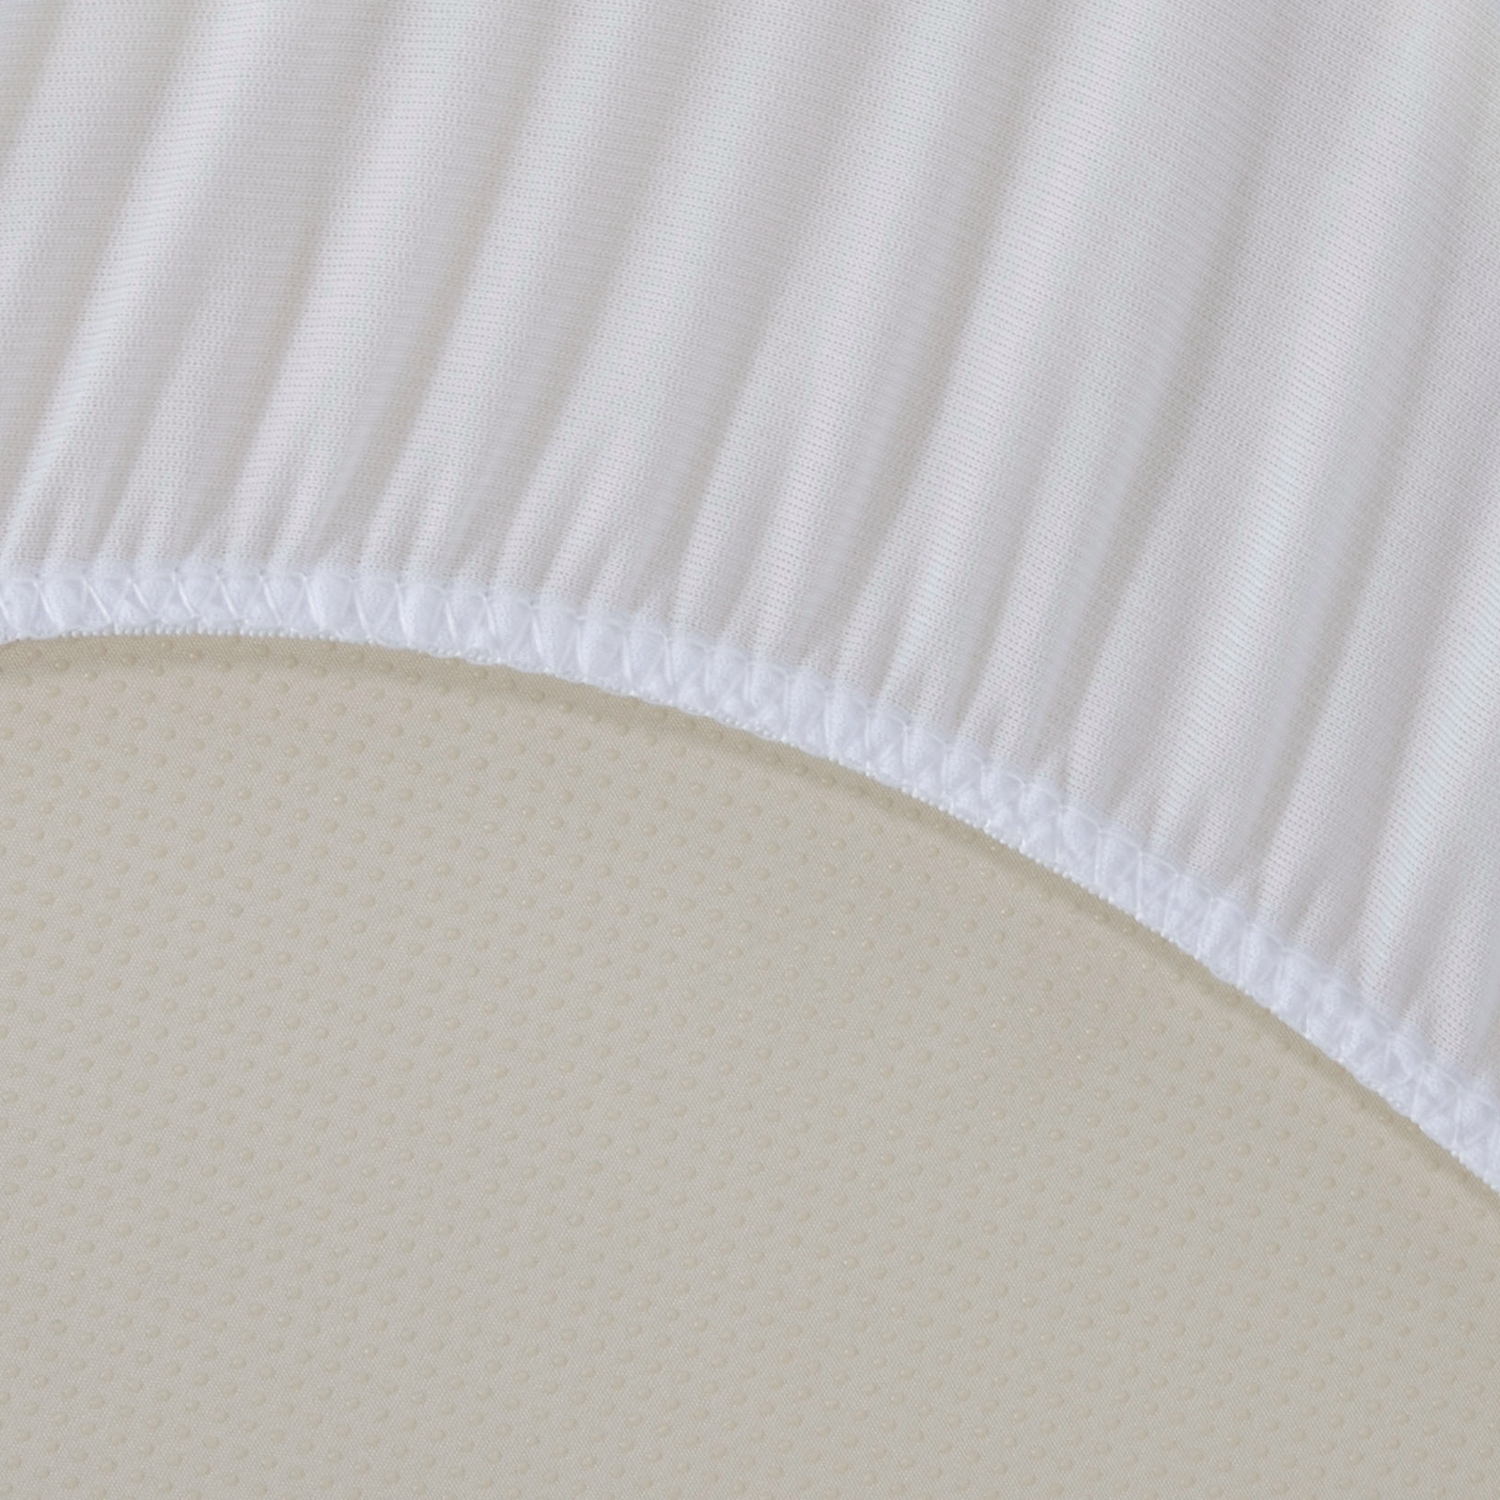 Bamboo Cotton Waterproof Mattress Cover Protector Full